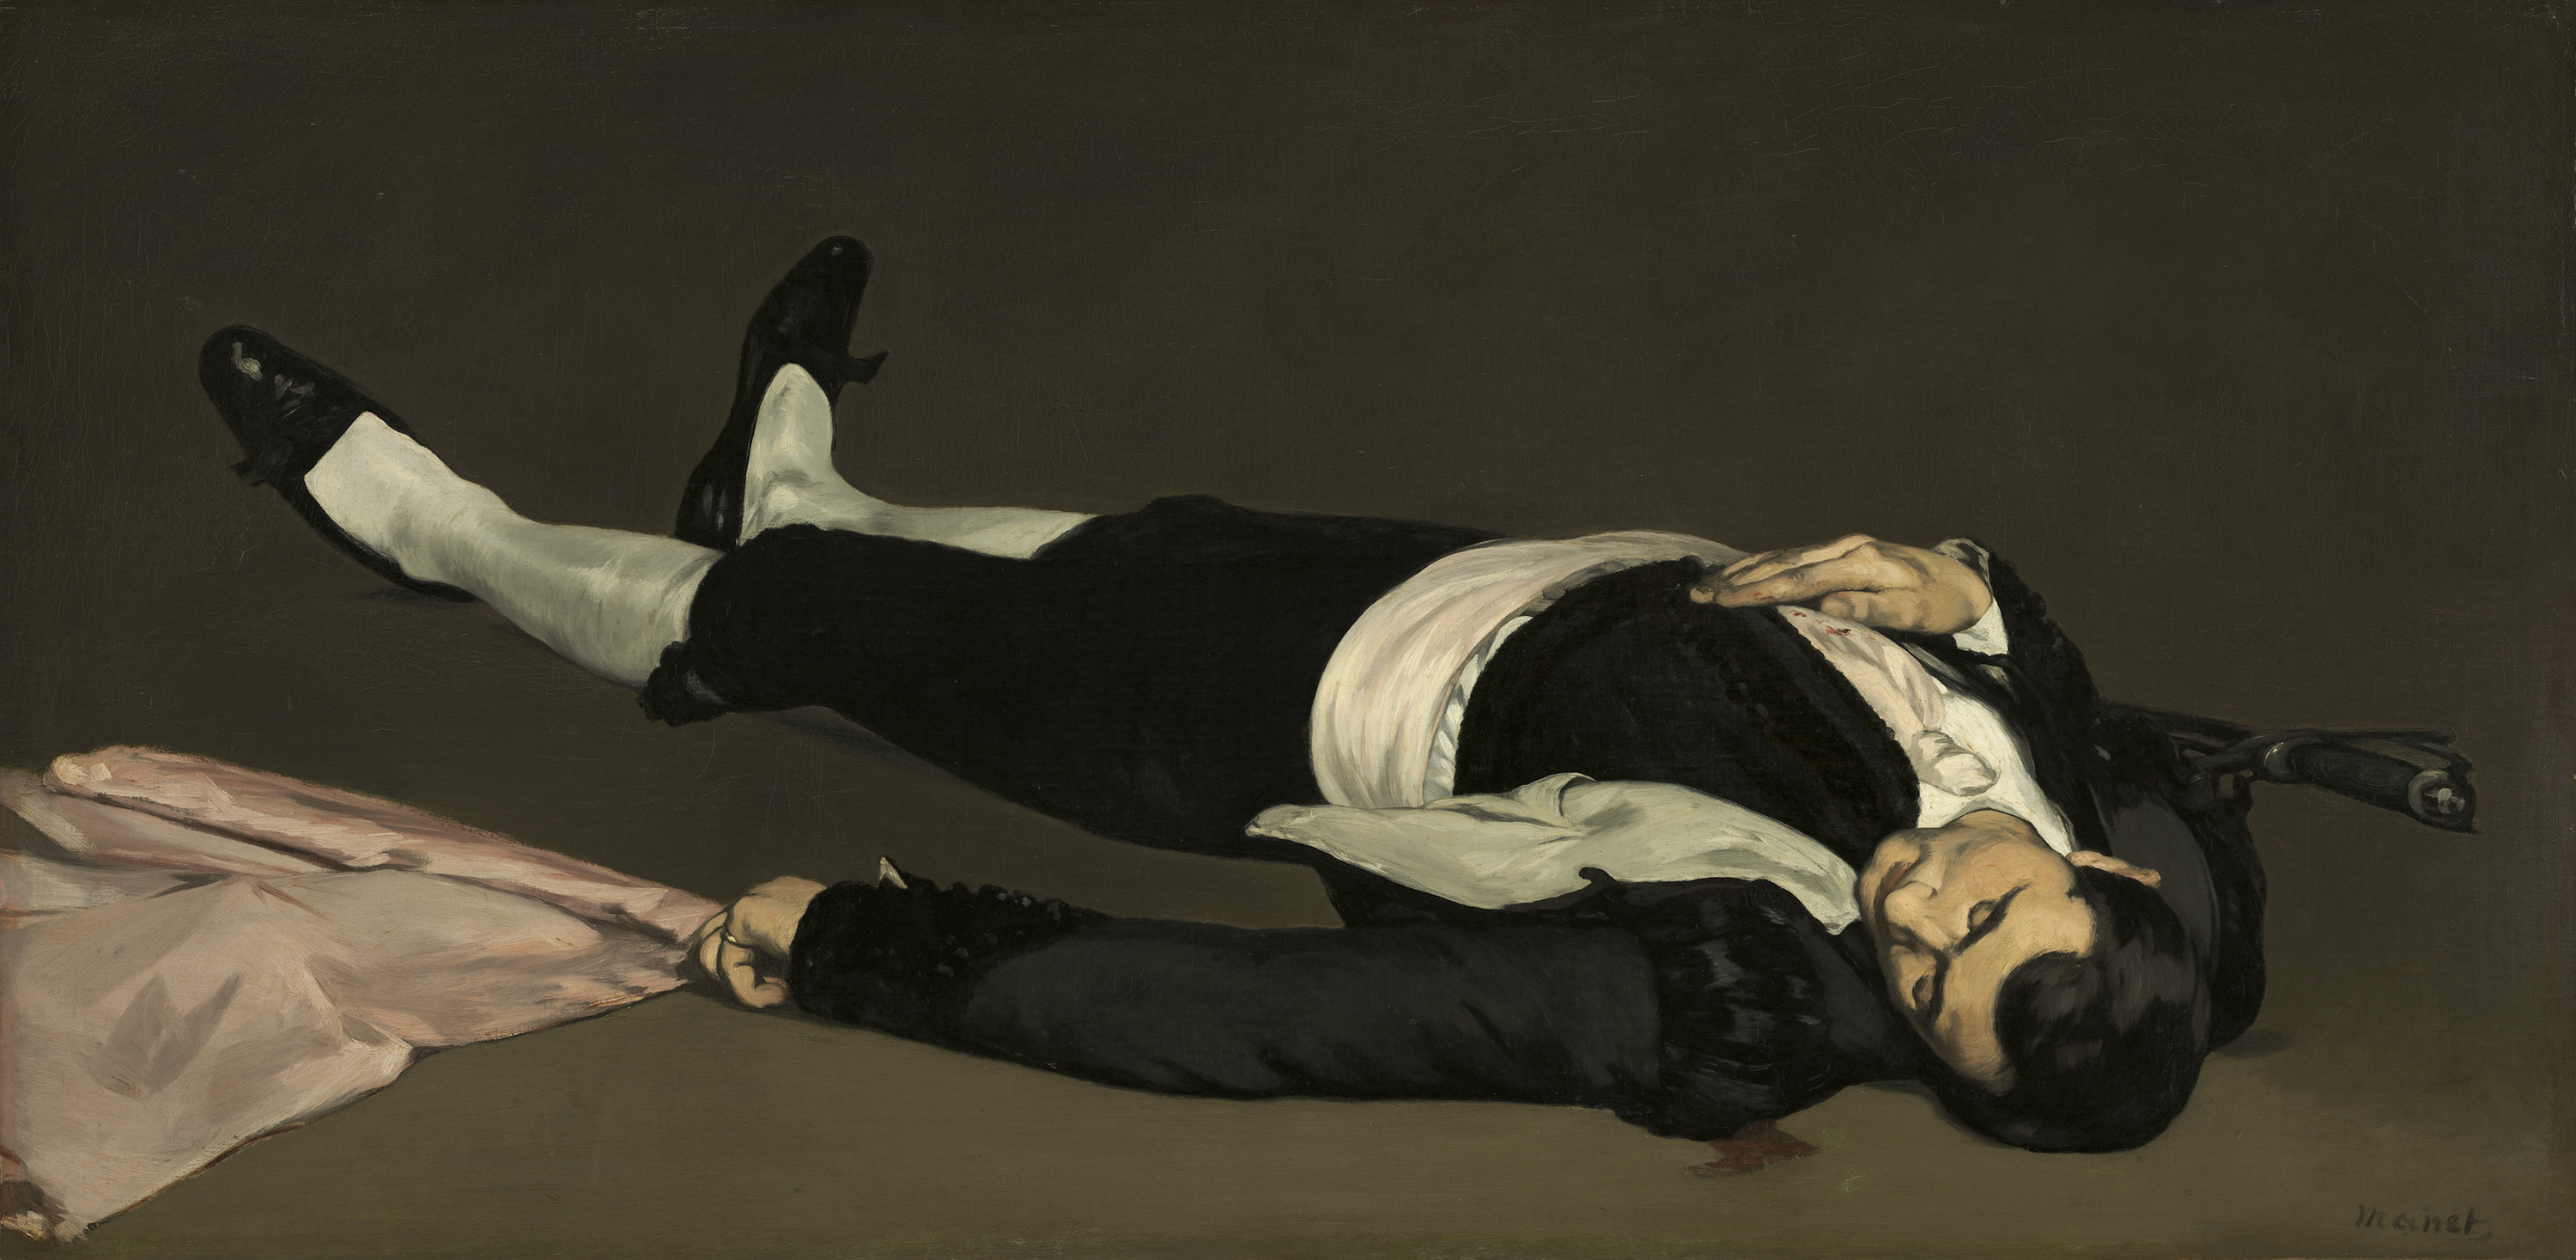 https://upload.wikimedia.org/wikipedia/commons/4/4e/Edouard_Manet_073_%28Toter_Torero%29.jpg